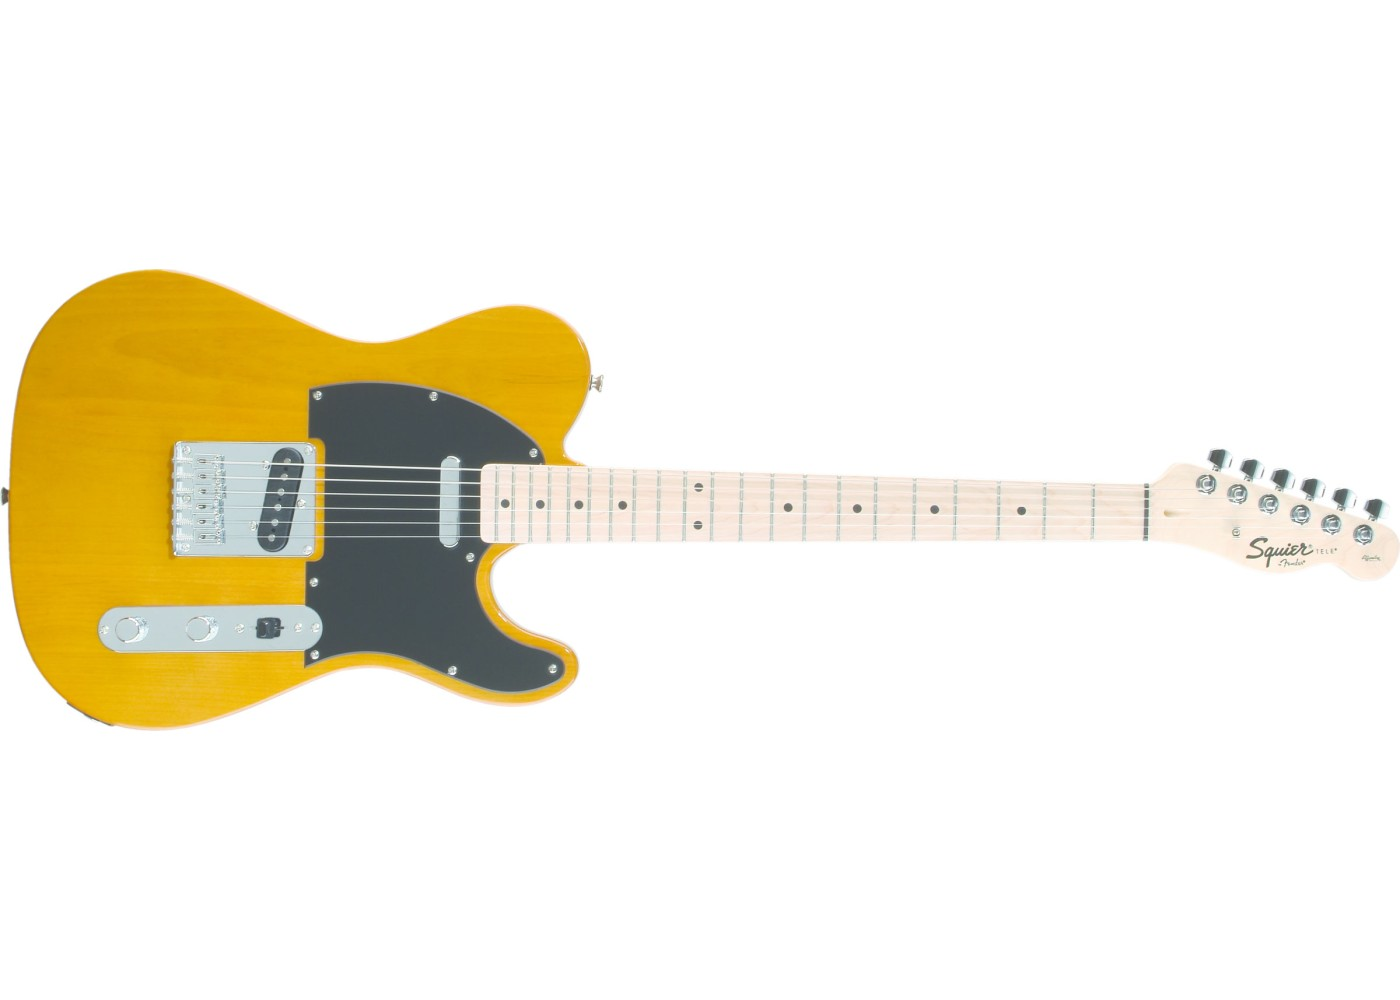 Guitars & Basses Acoustic Electric Guitars Practical Squier Telecaster Affinity 031 0203 550 Electric Guitar